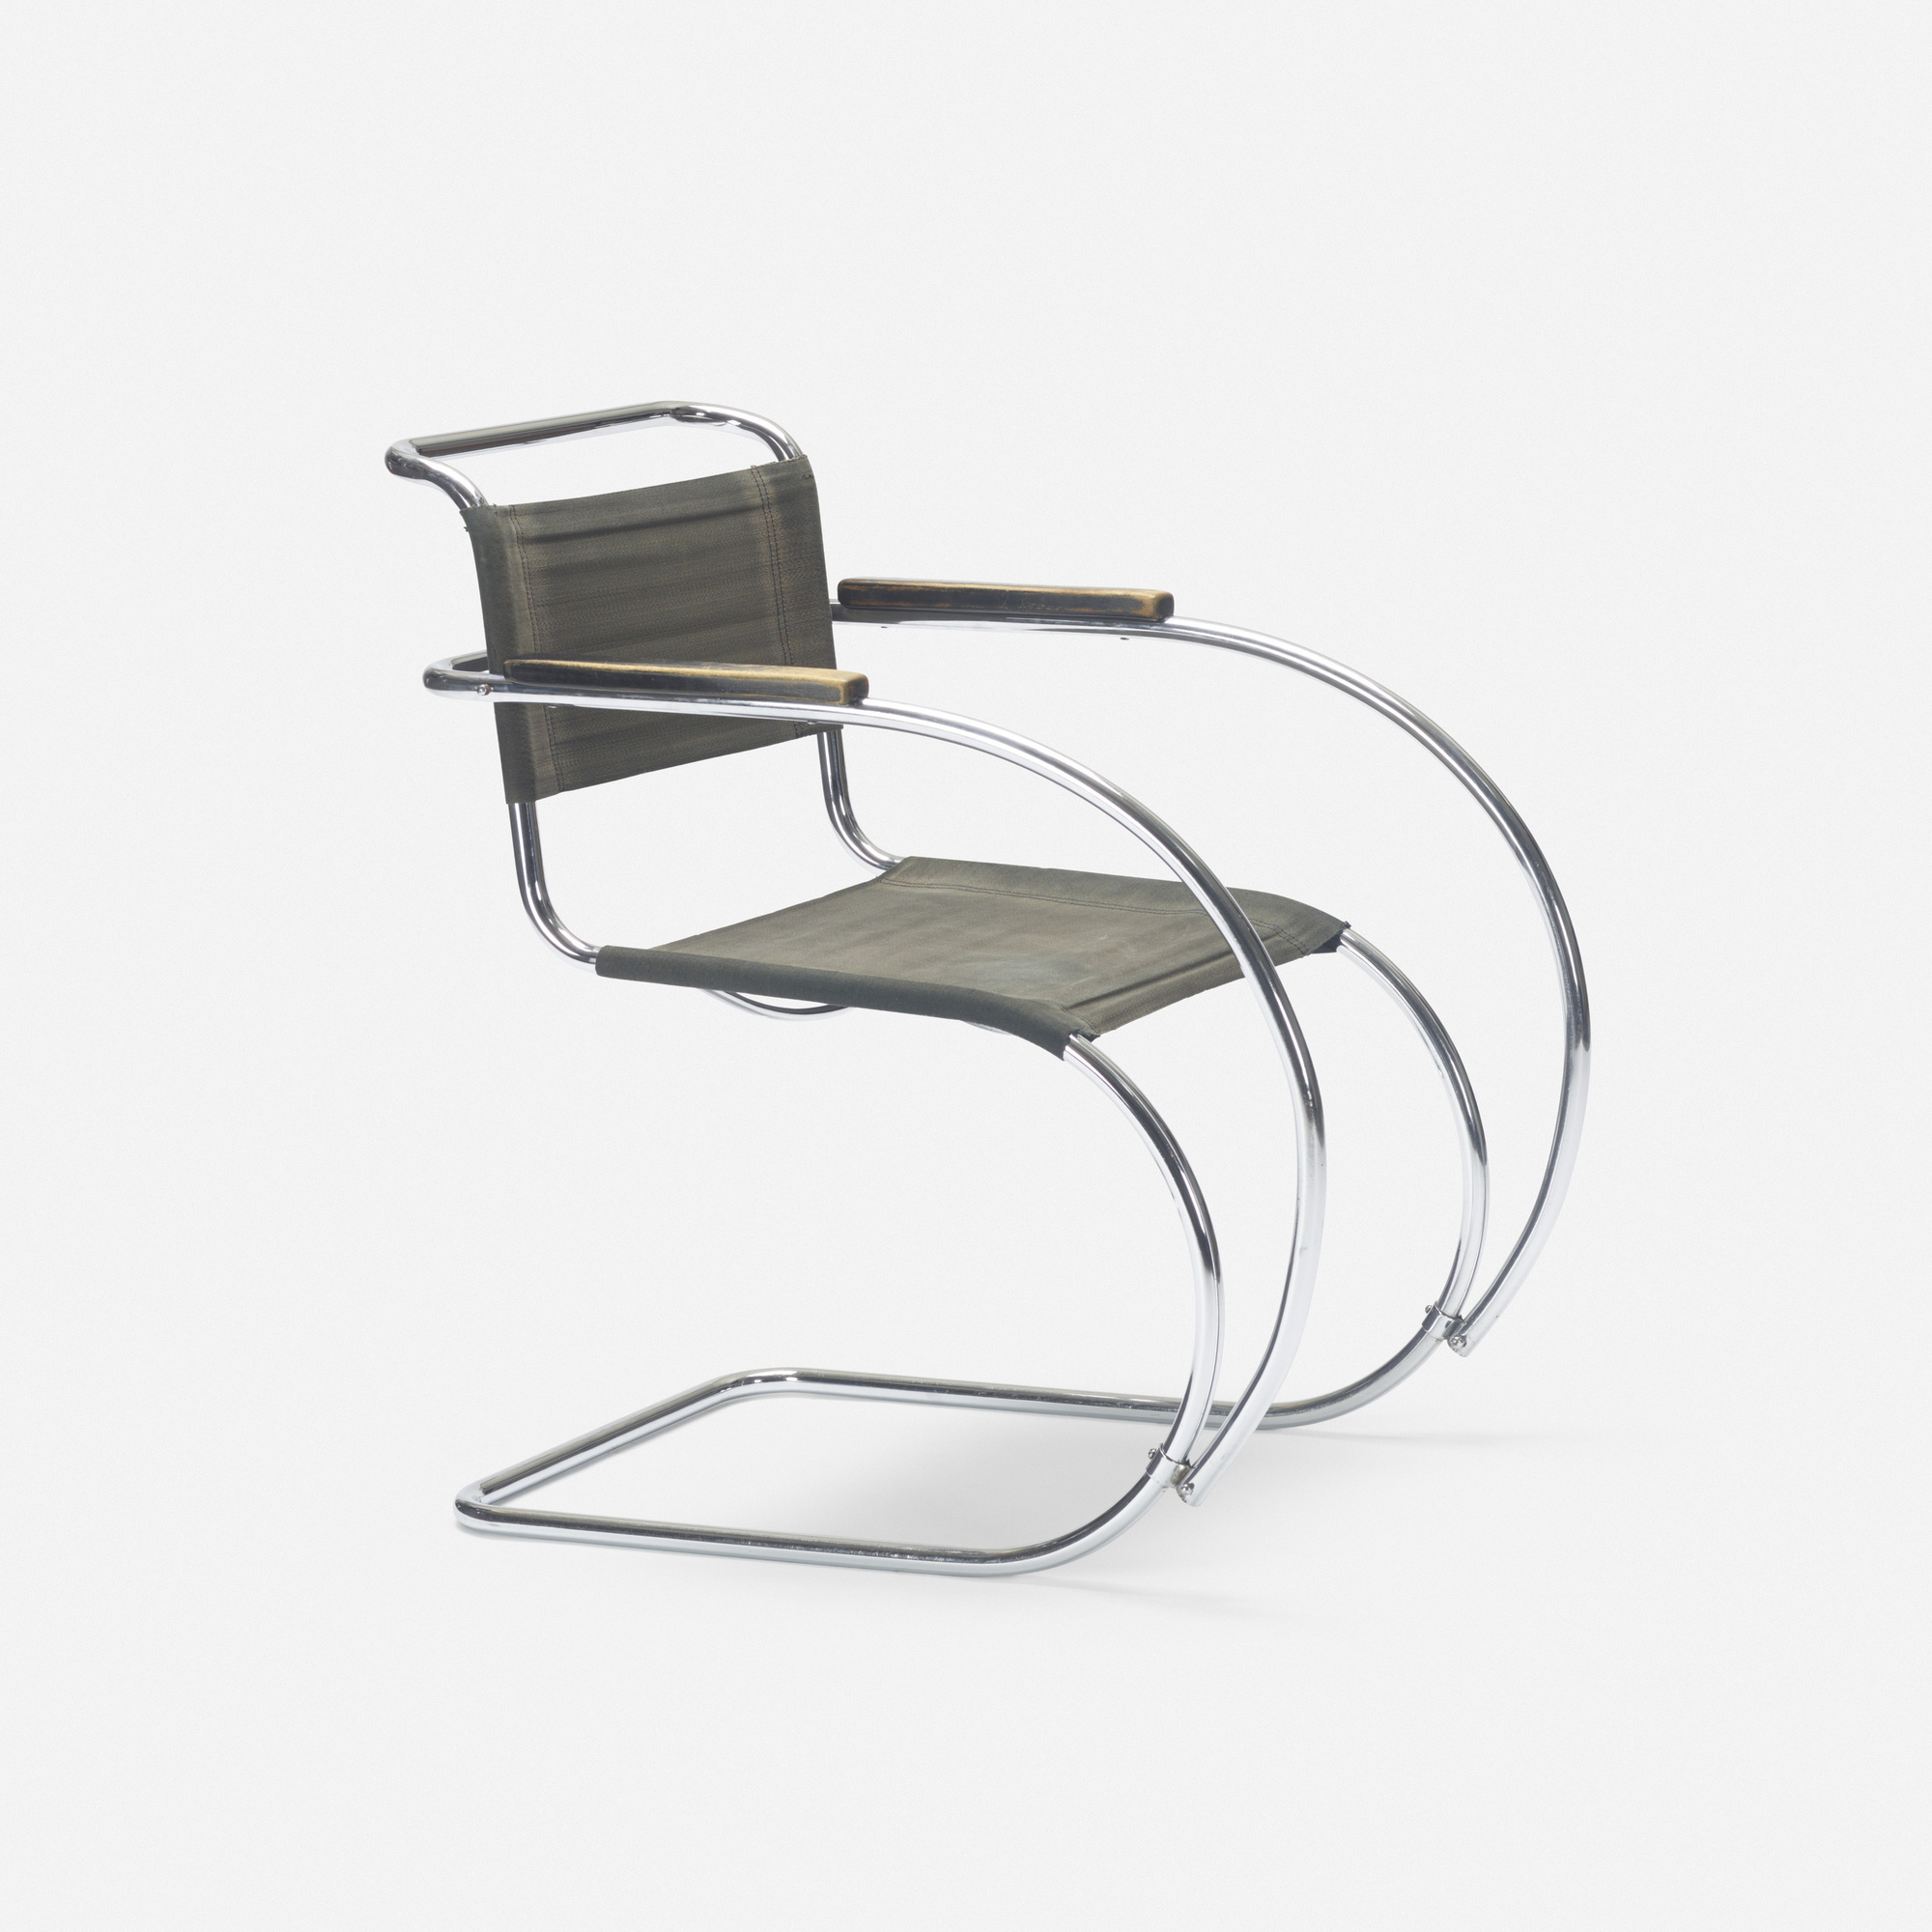 251: Ludwig Mies van der Rohe / MR 534 (1 of 2)